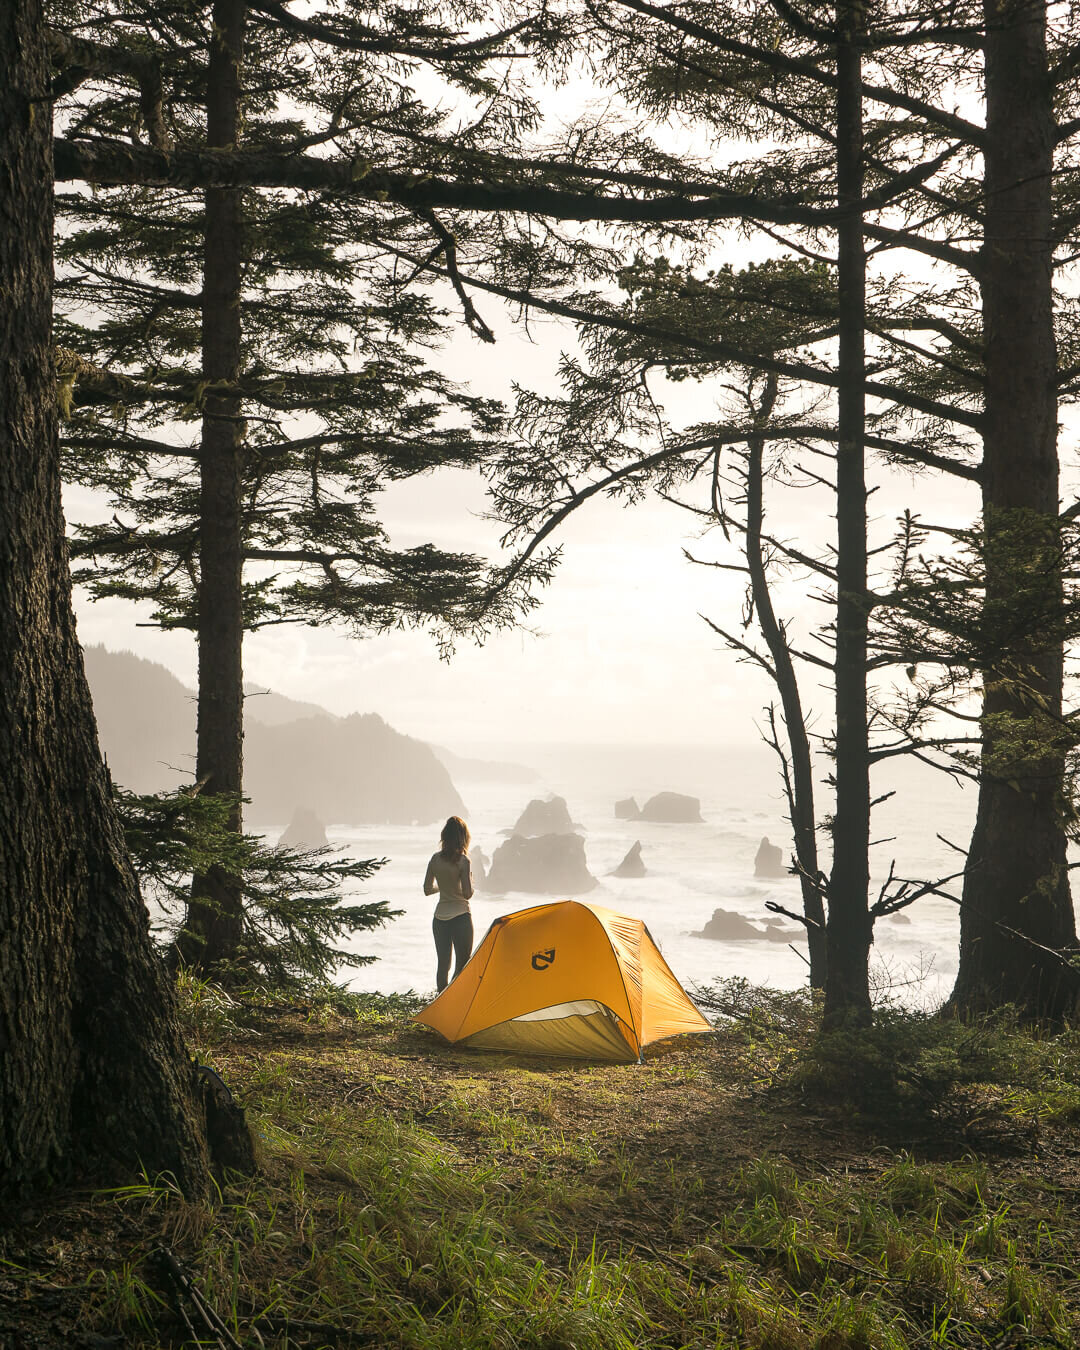 Camping on the coast.